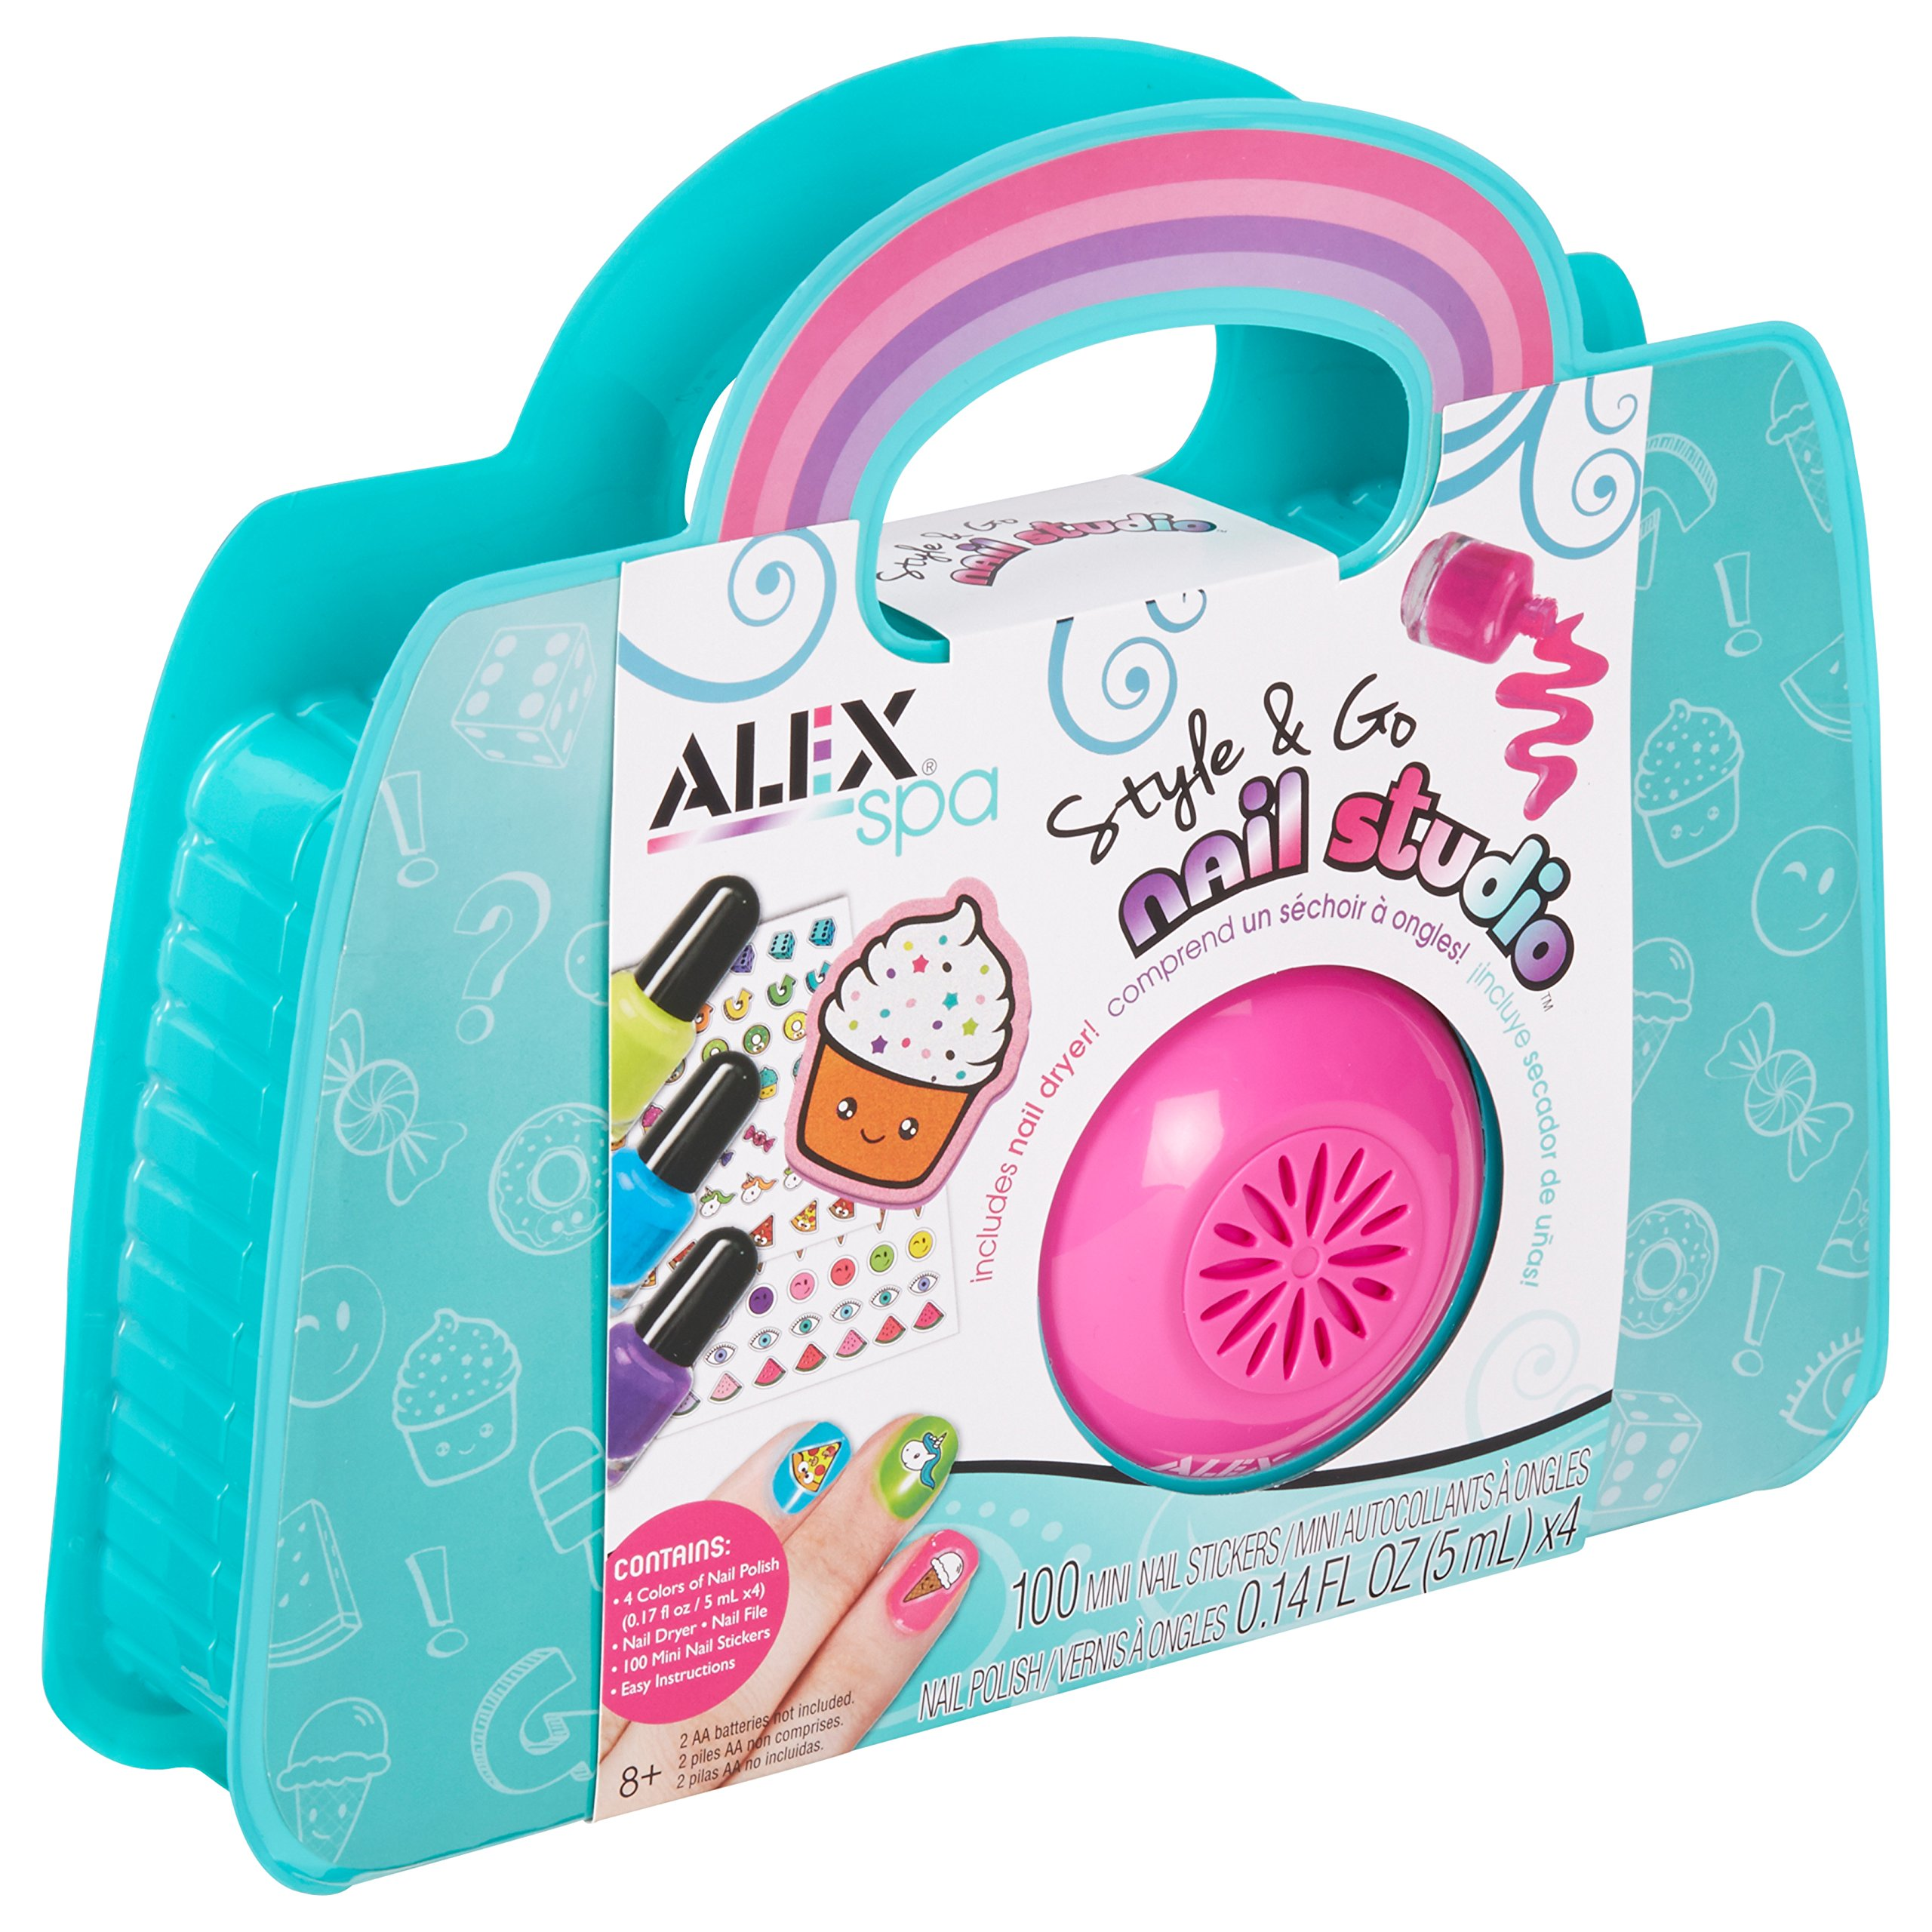 ALEX Spa Style & Go Nail Studio product image